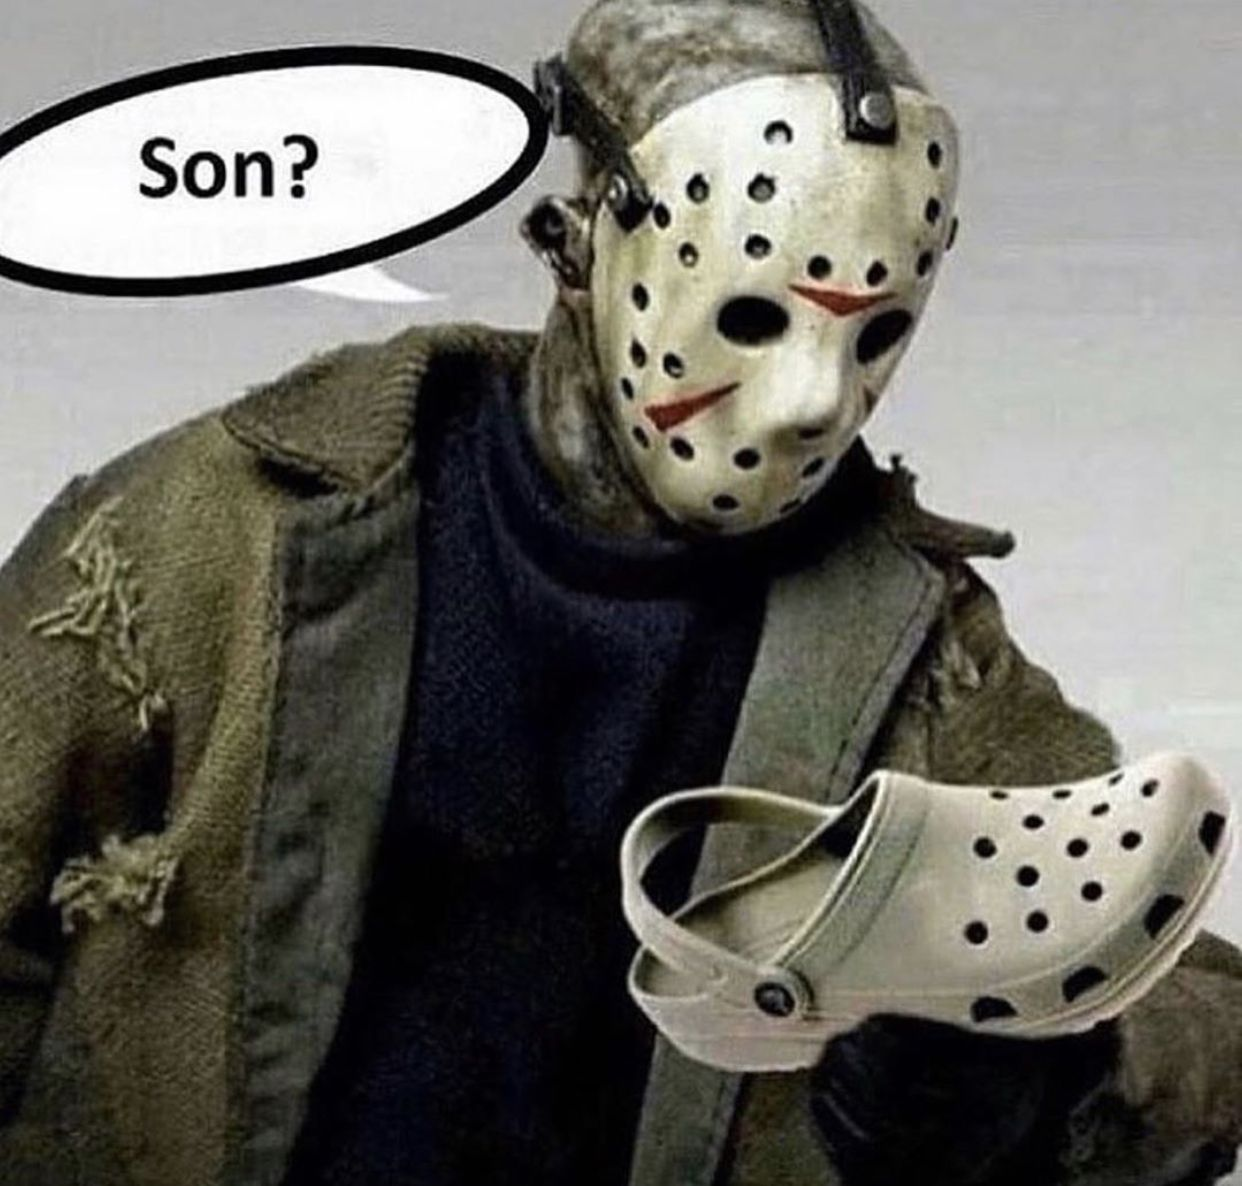 Pin By Ryan Scott On Memes Happy Friday The 13th Tales From The Crypt Funny Friday Memes